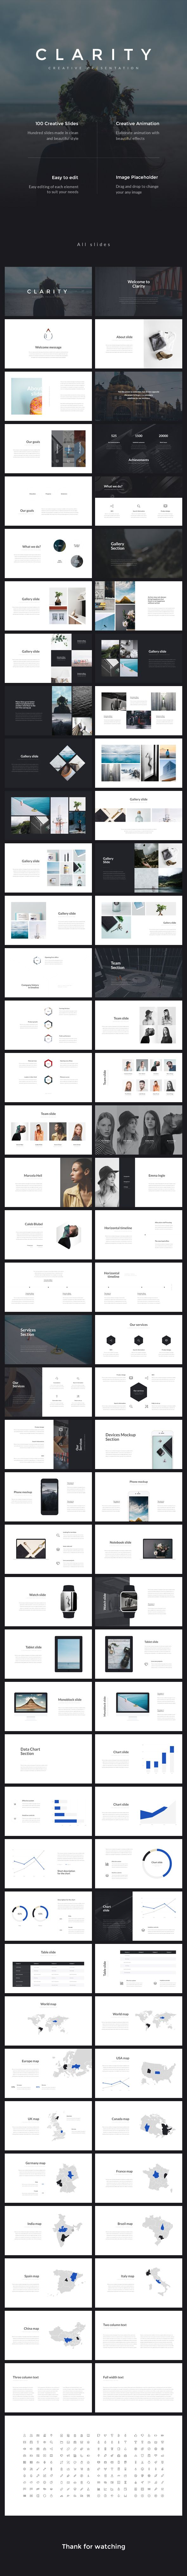 Clarity Keynote Presentation Template. Download here: https://graphicriver.net/item/clarity-keynote-presentation/17563031?ref=ksioks